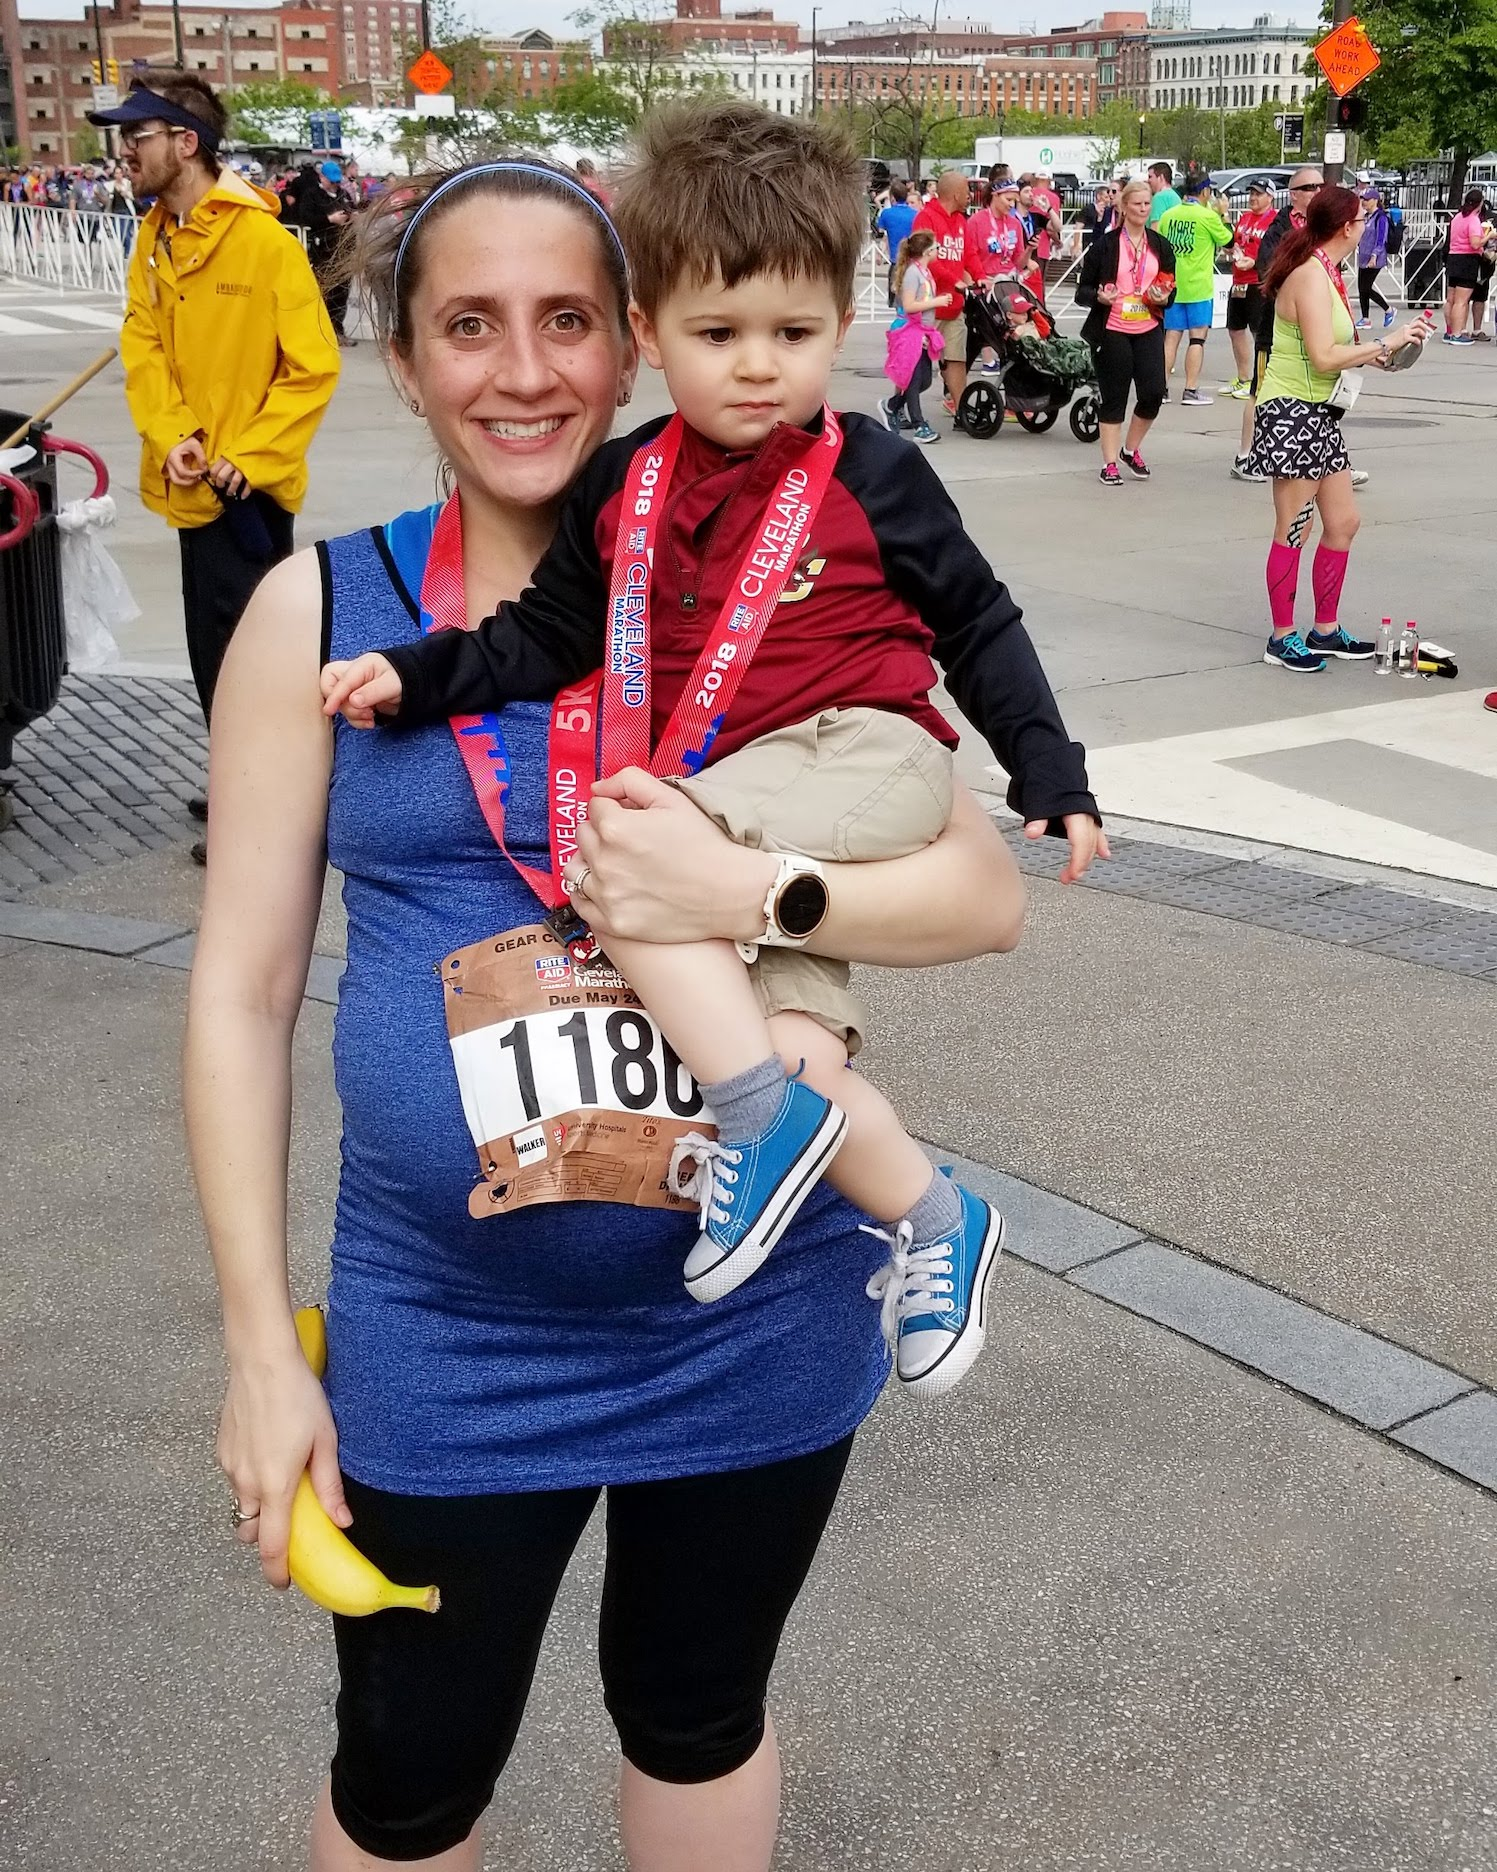 Benefits of running during pregnancy